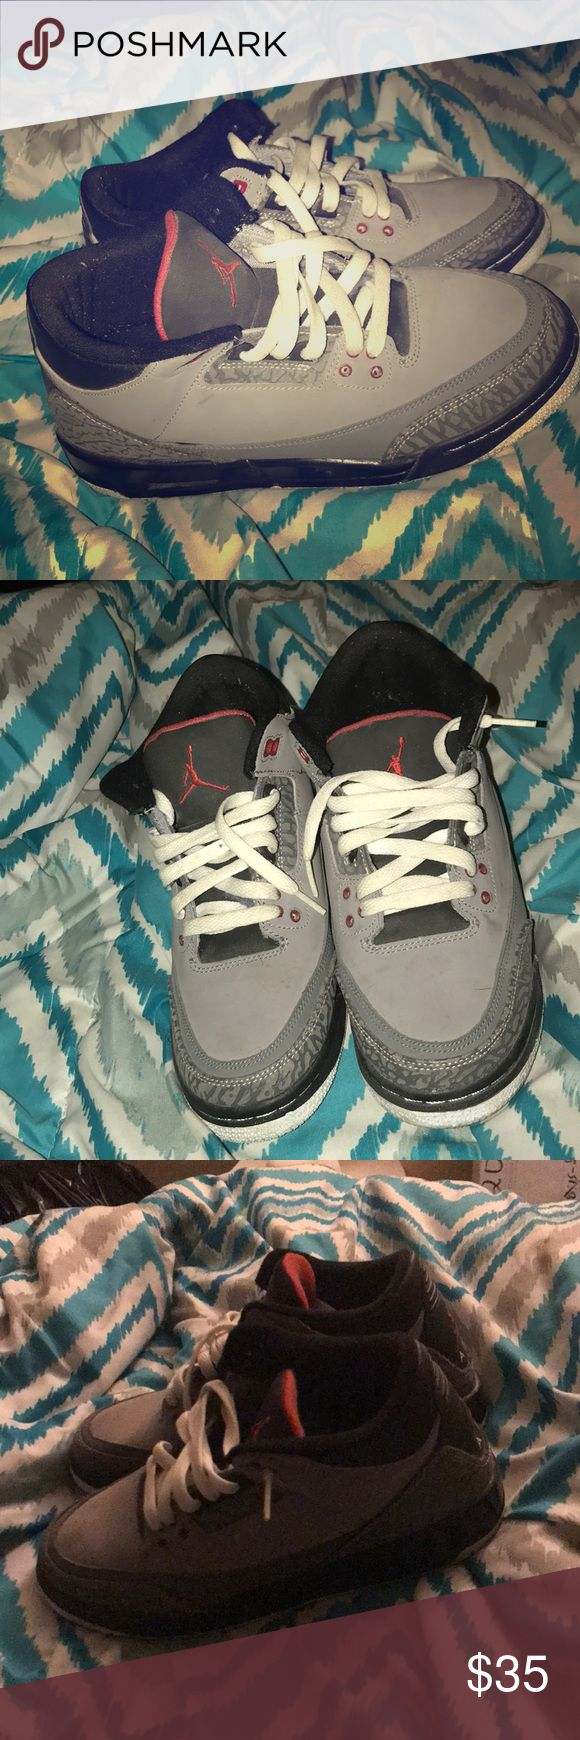 Air Jordan Retro 3's Air Jordan Retro 3's Air Jordan Shoes Sneakers